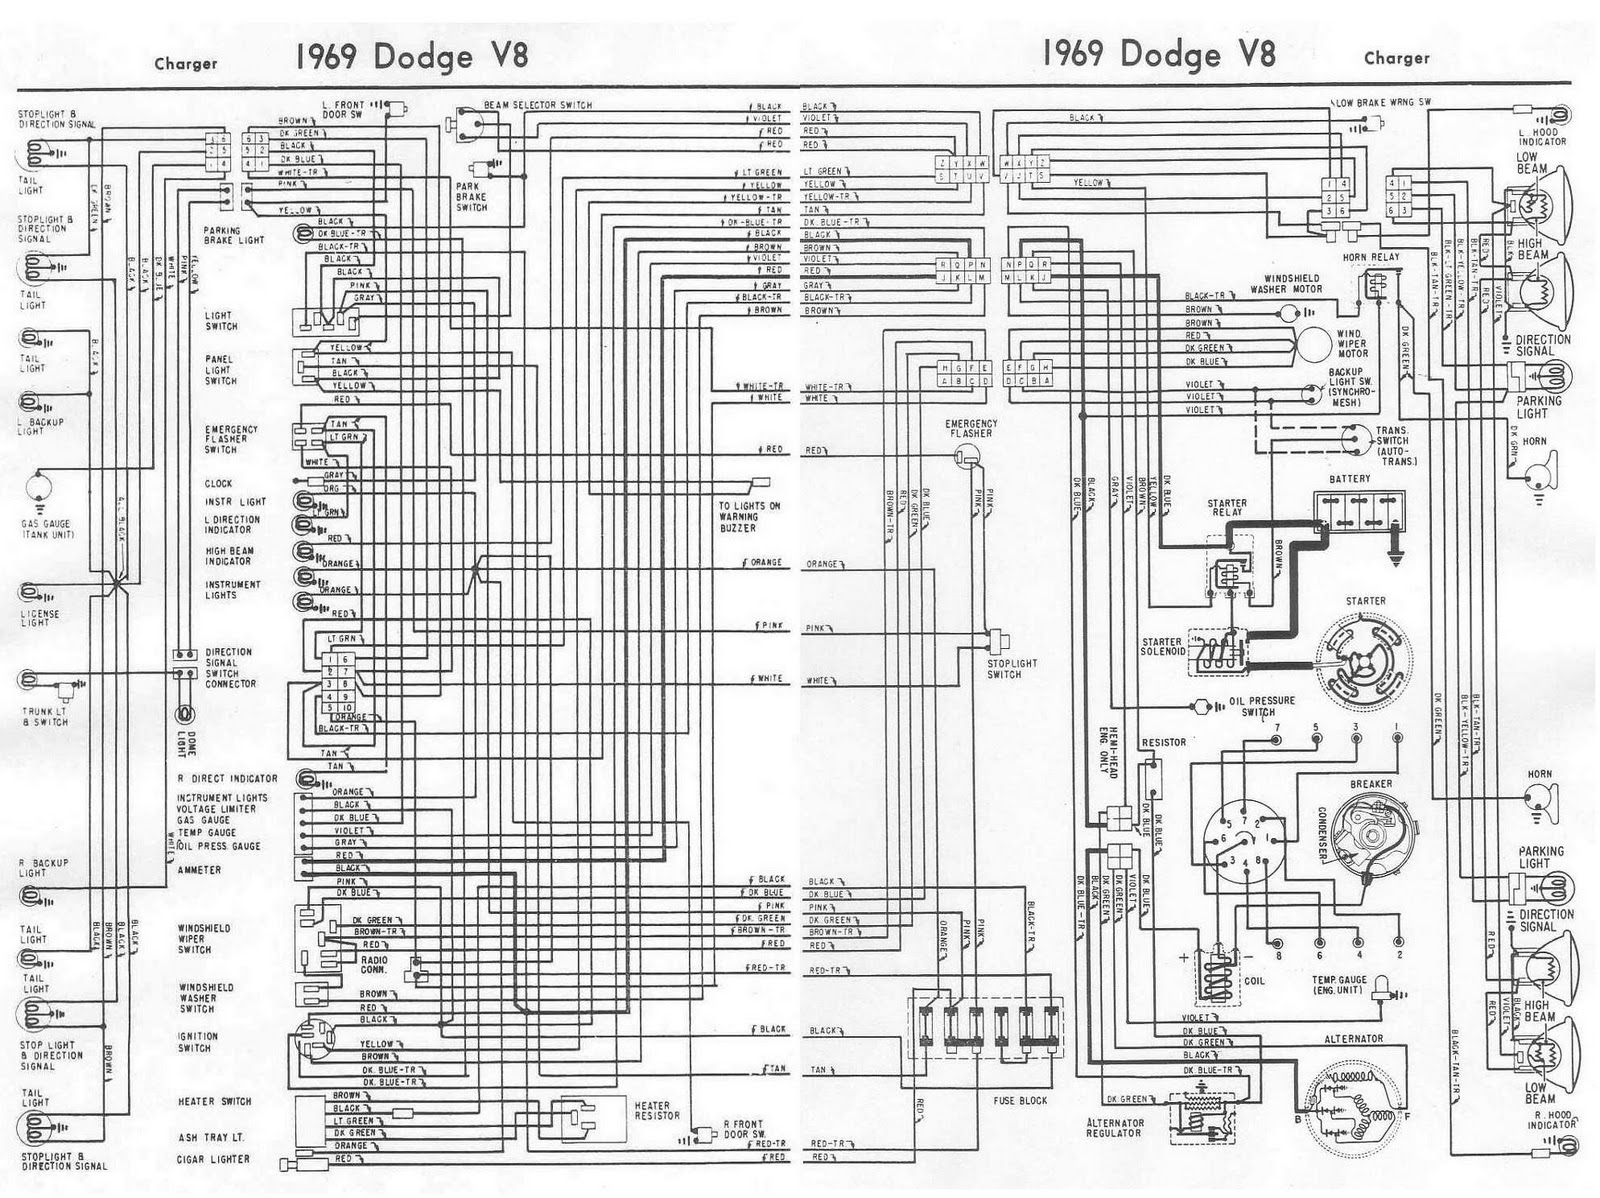 Diagram 97 Dodge Wiring Diagram Full Version Hd Quality Wiring Diagram Bookaponek Urbanamentevitale It